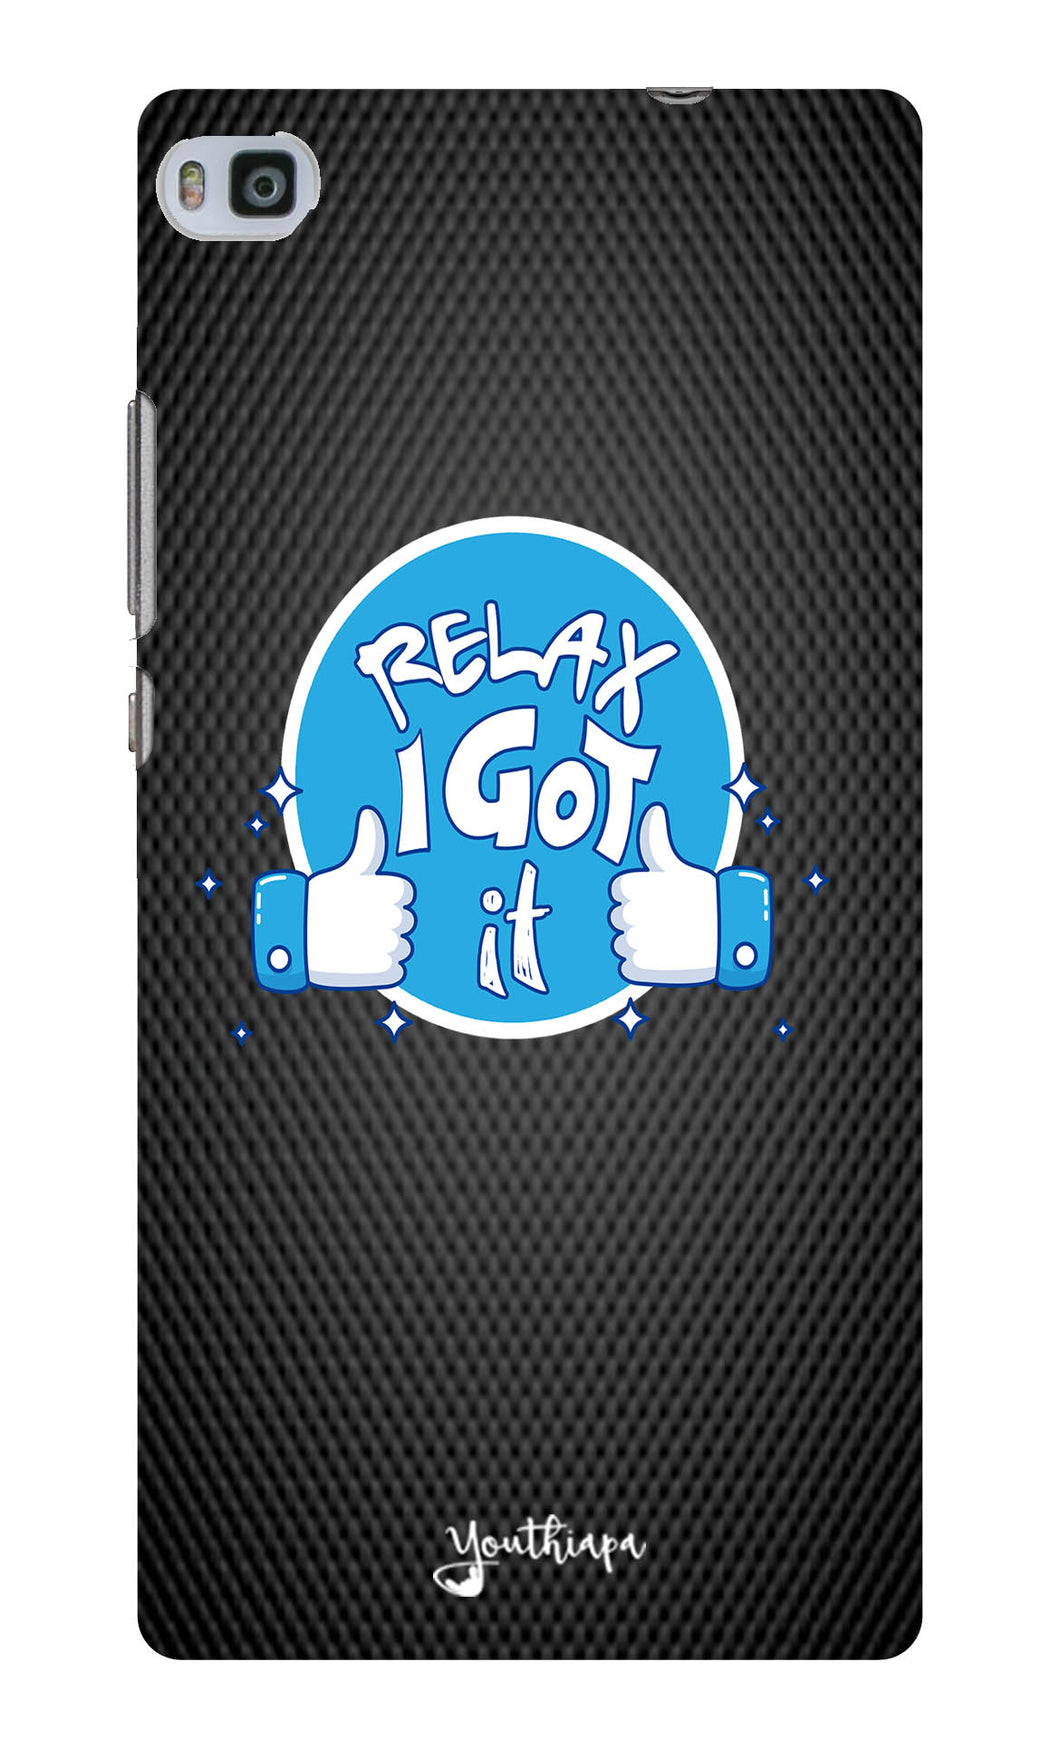 Relax Edition for Huawei Ascend P8